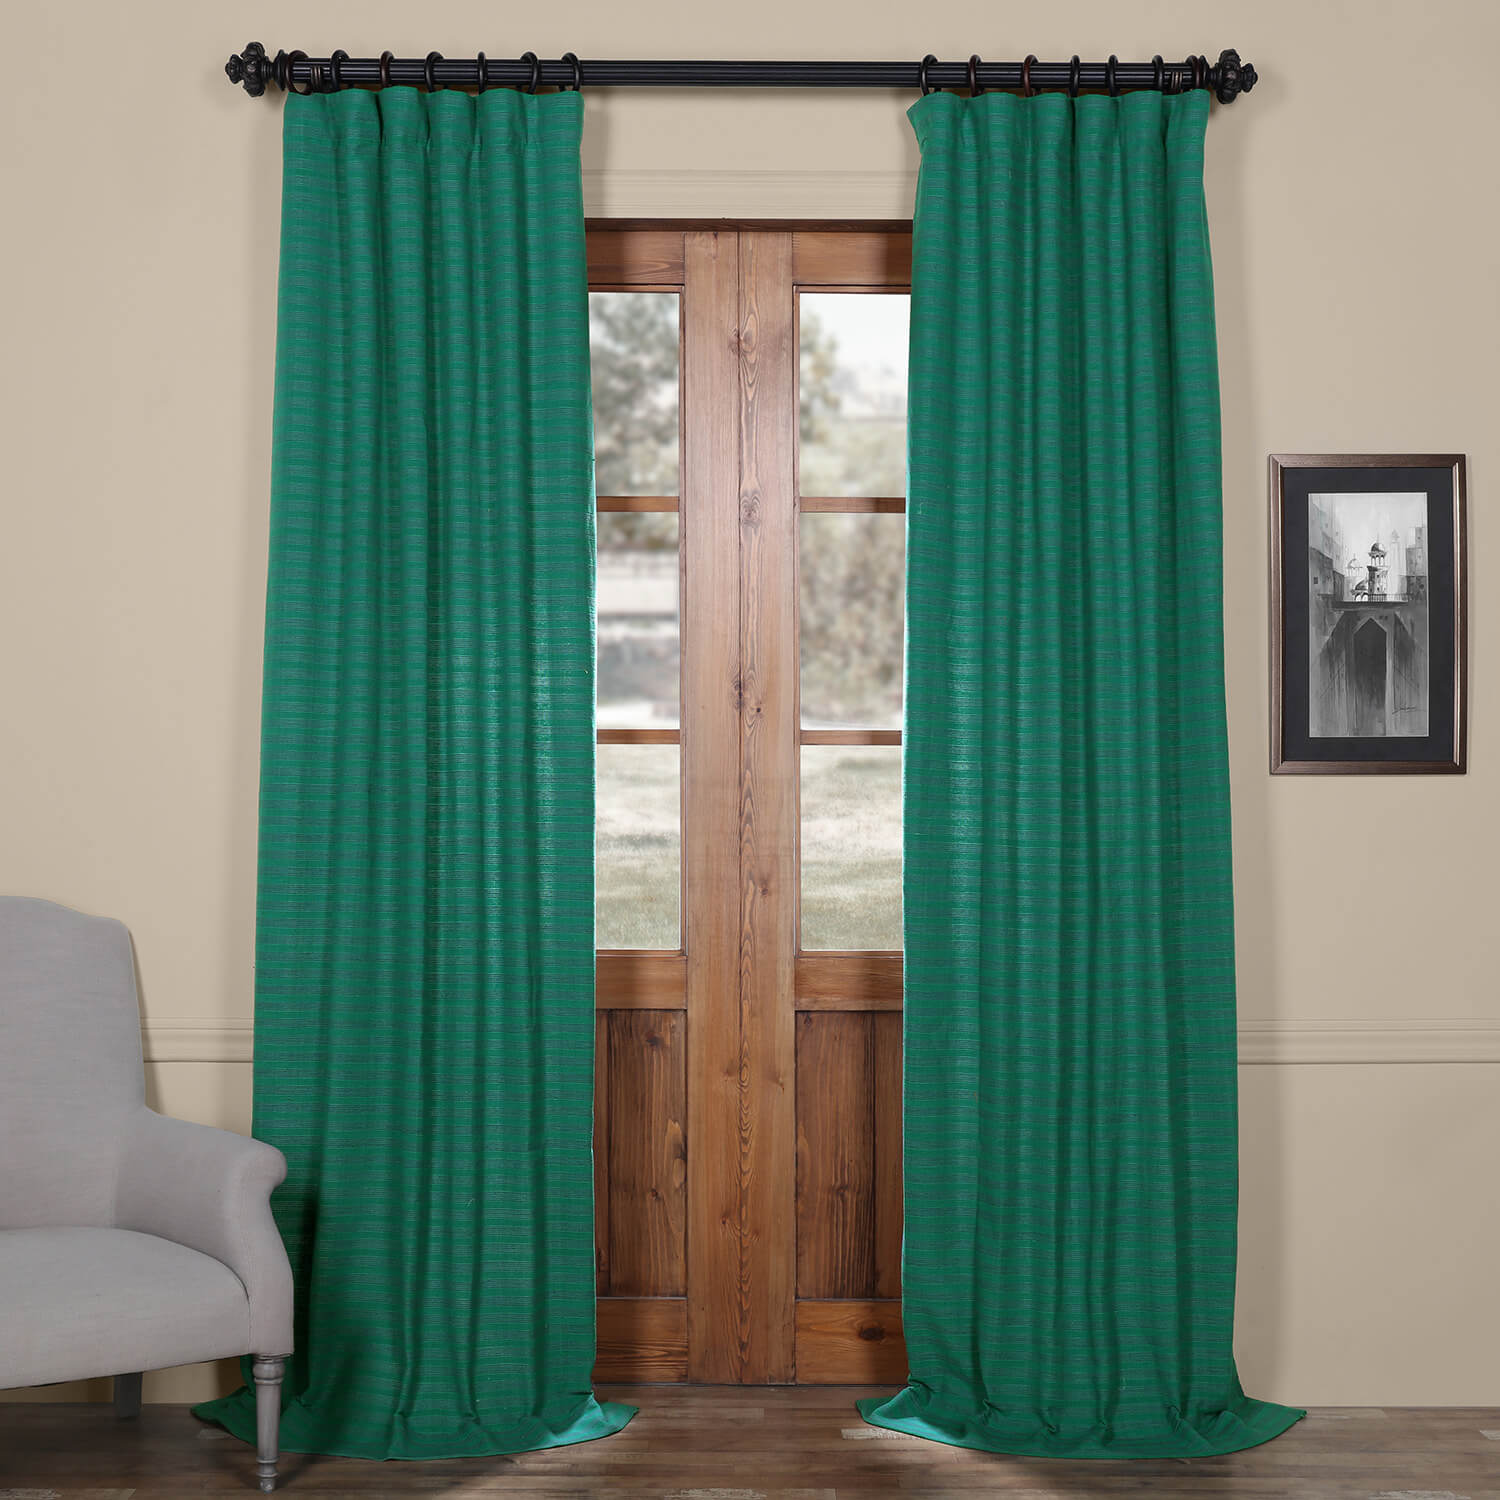 Teal Hand Weaved Cotton Curtain